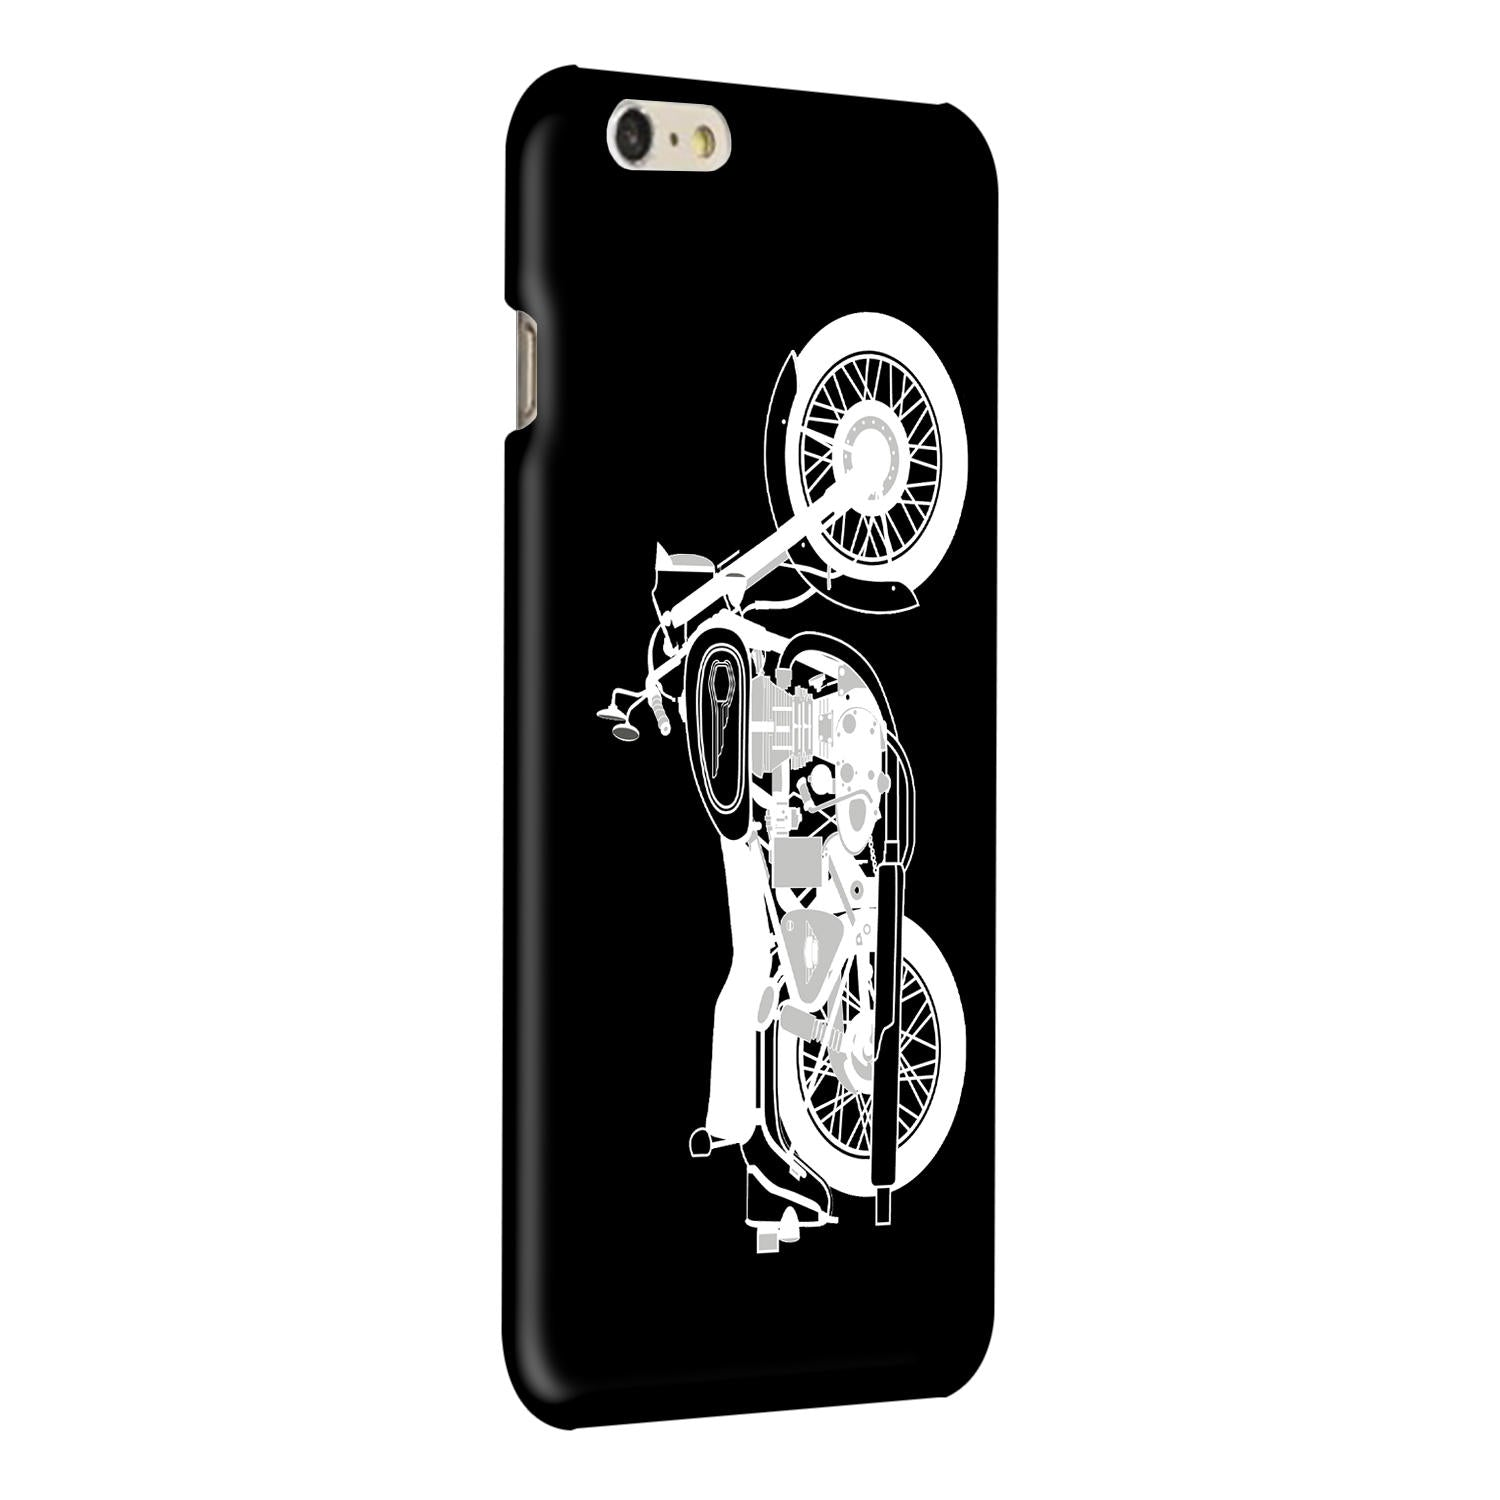 Bulllet Love iPhone 6 Plus Mobile Cover Case - MADANYU